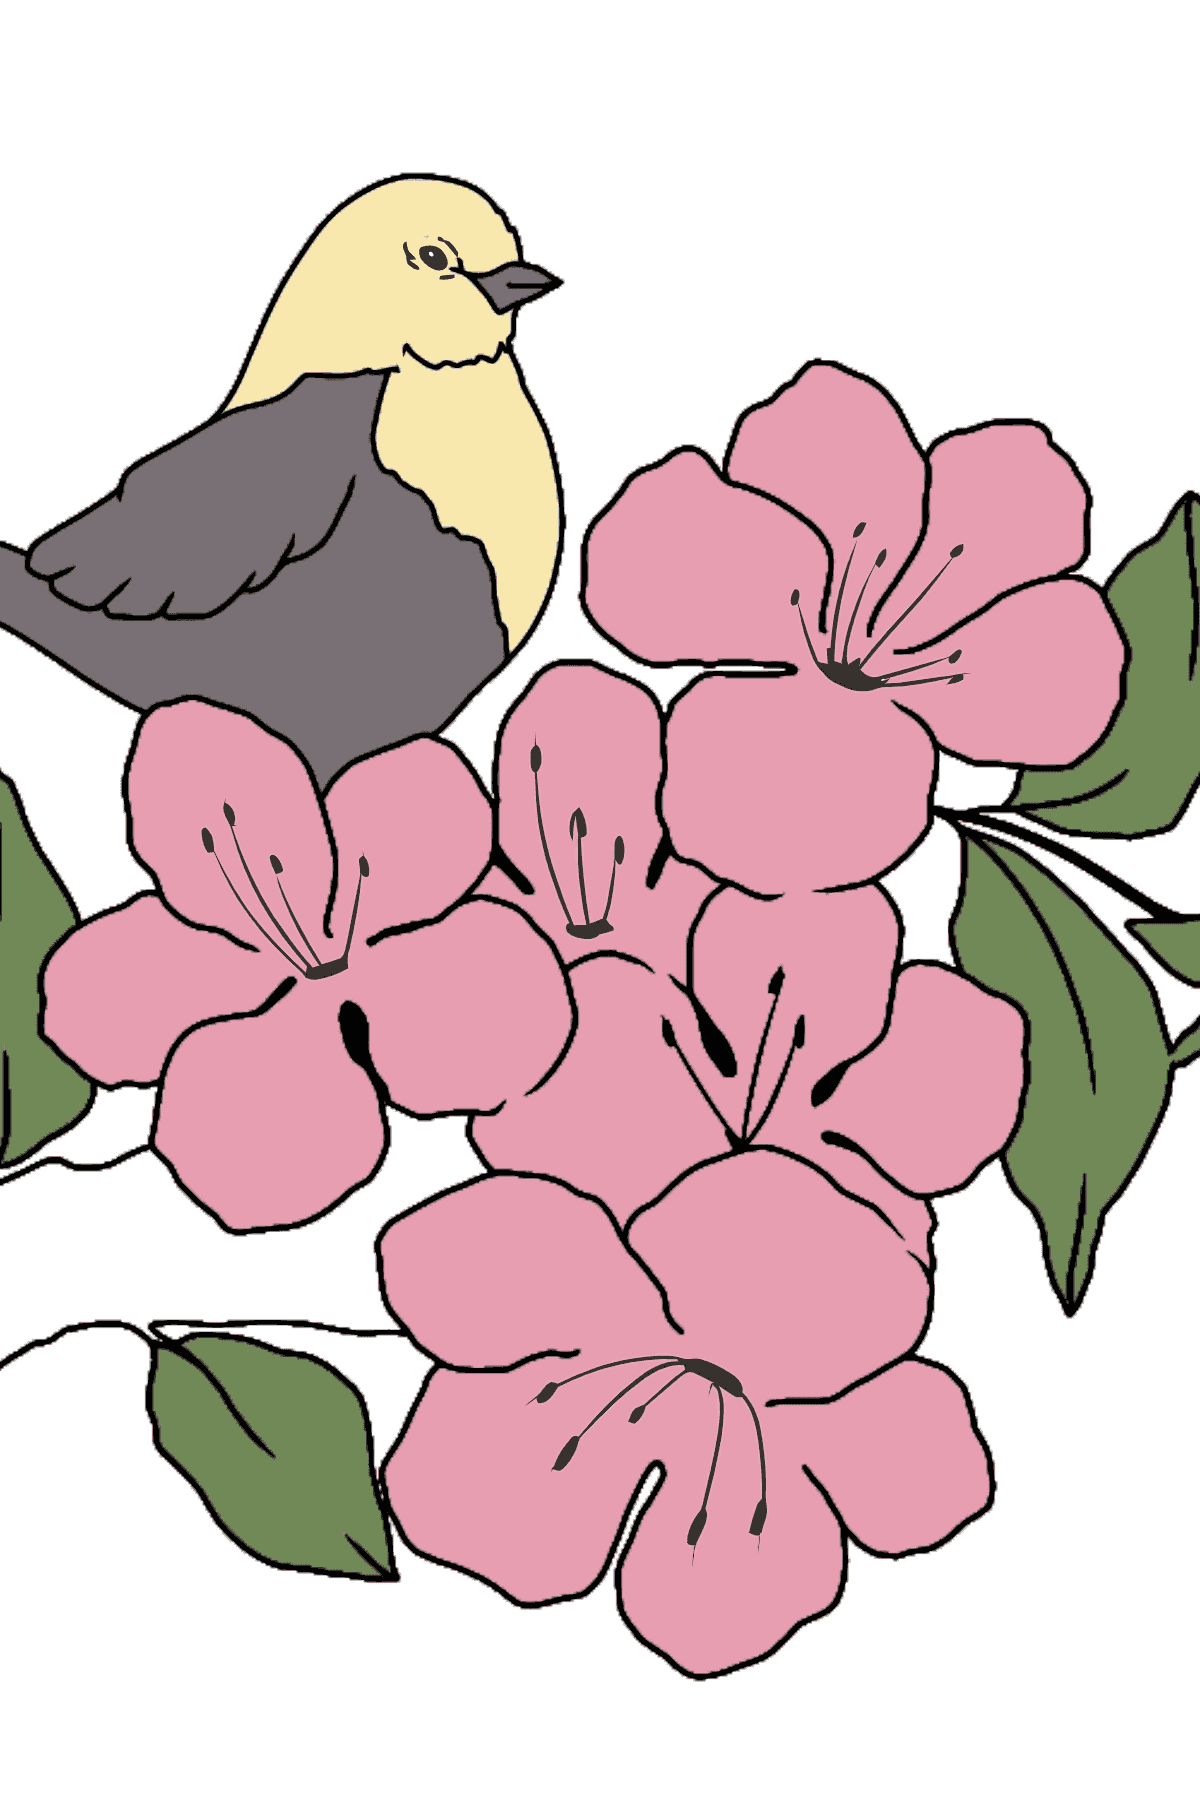 Summer Coloring Page - A Bird is Chirping on a Branch with Flowers for Children